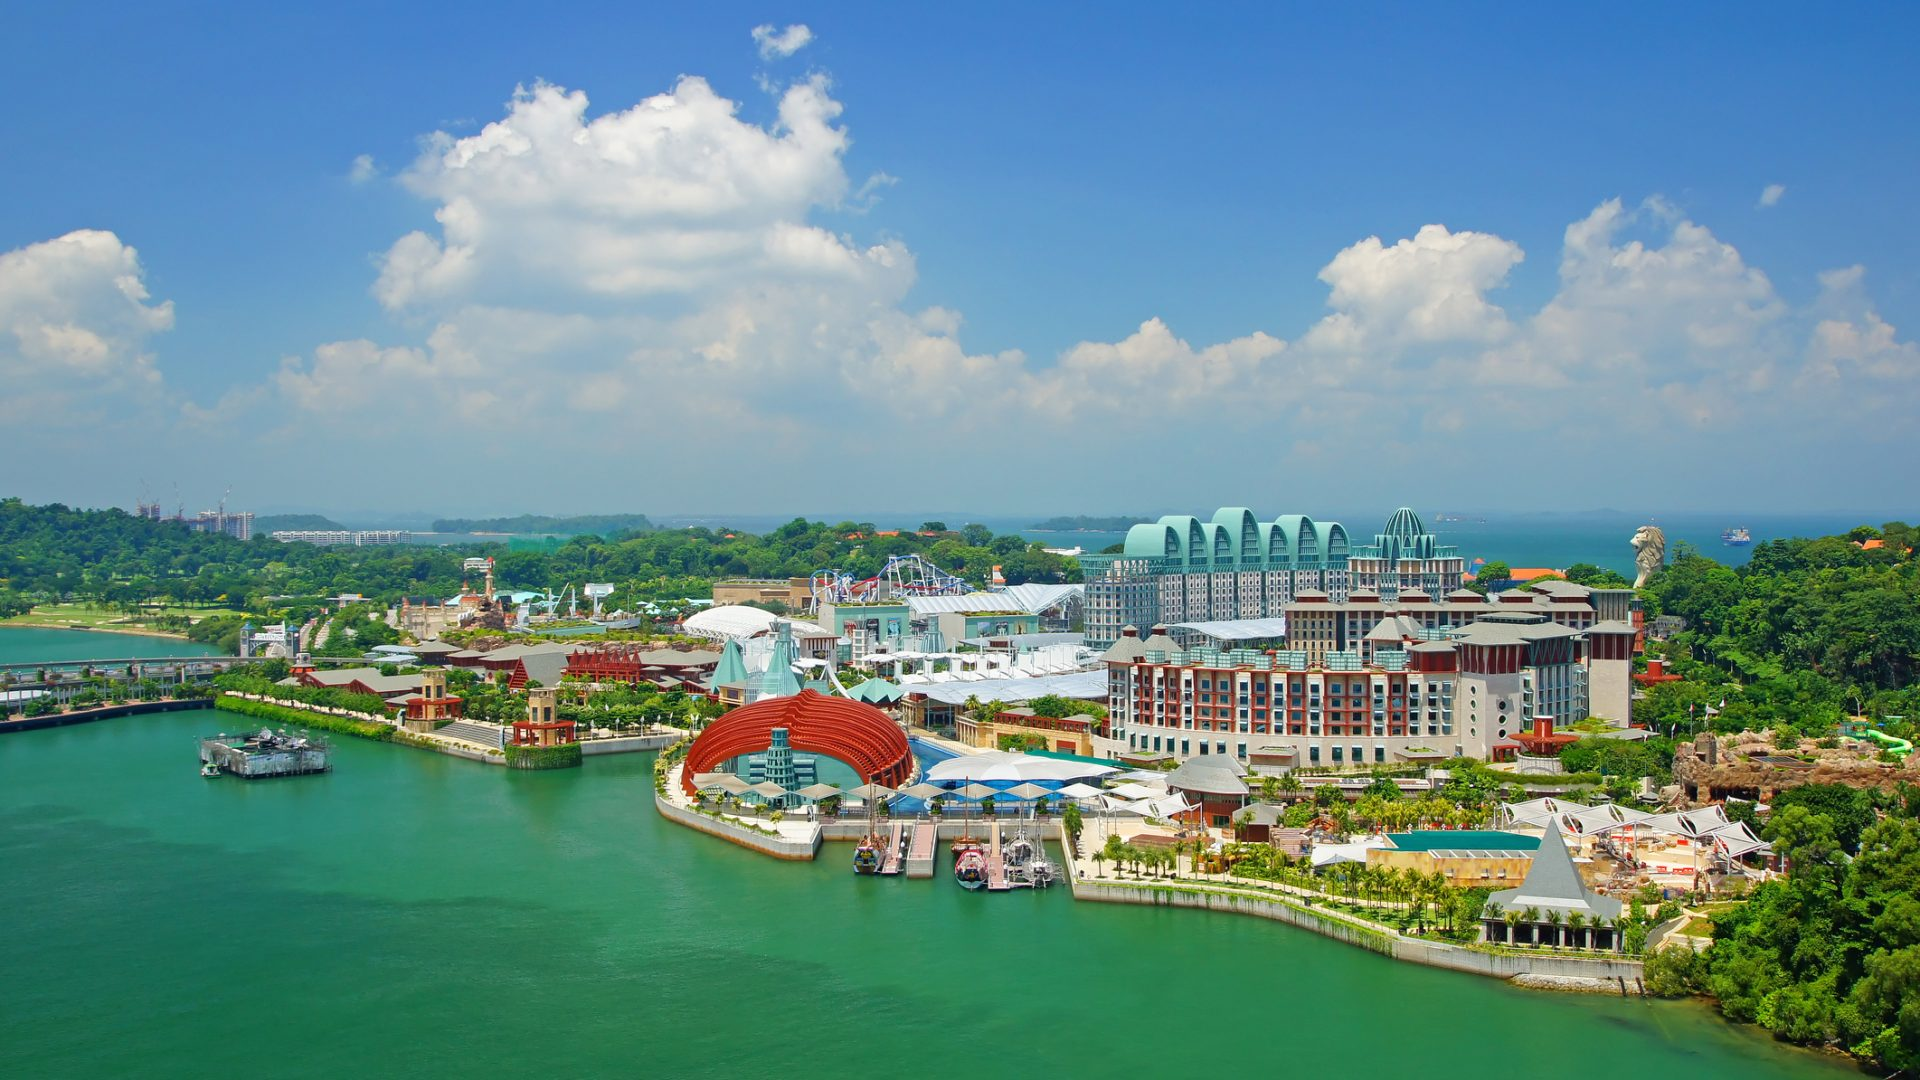 A view over Sentosa island in Singapore.